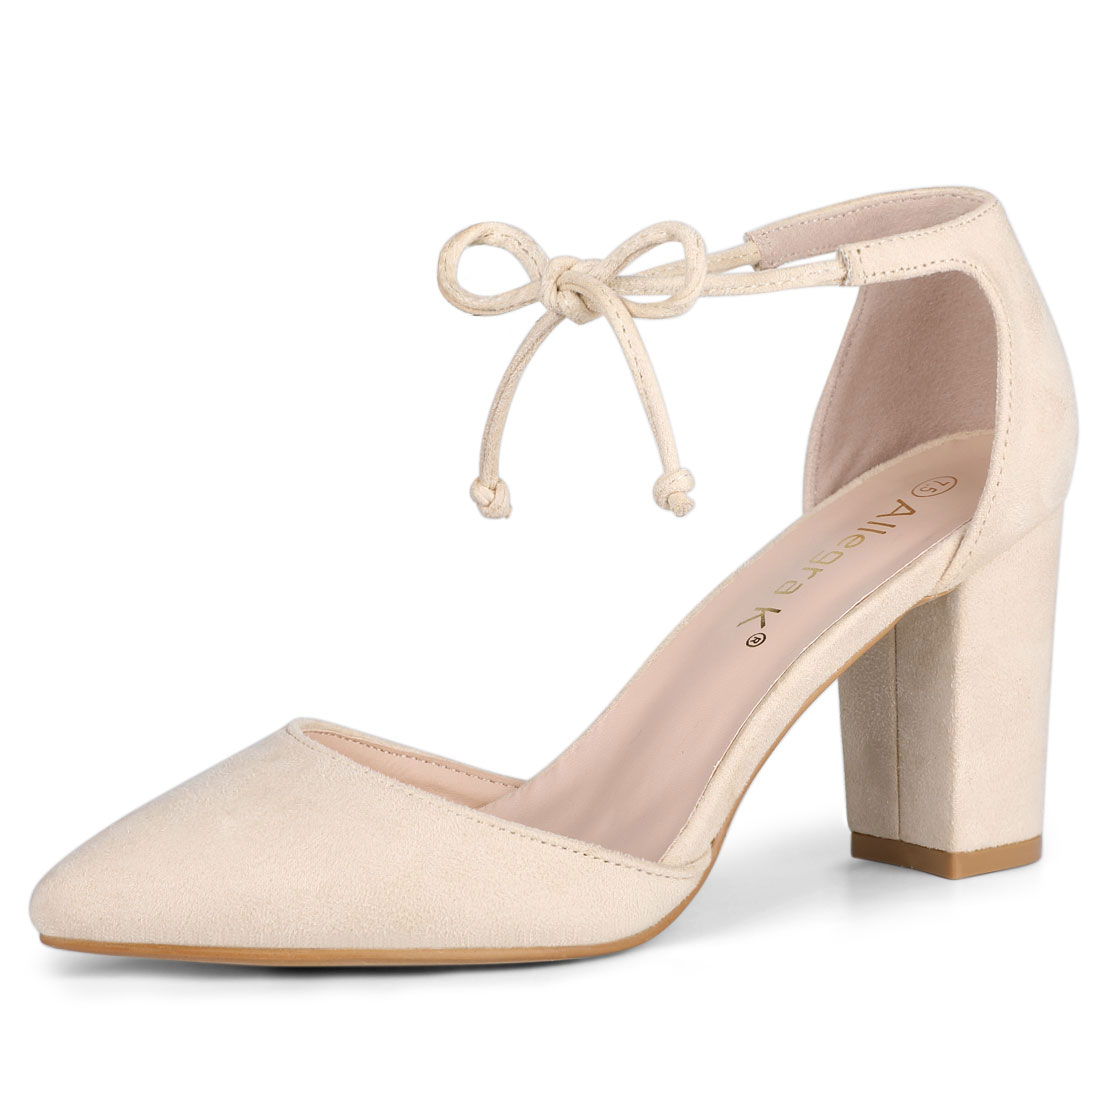 Allegra K Women's Ankle Tie Chunky Heel Pointed Toe Dress Pumps Beige US 9